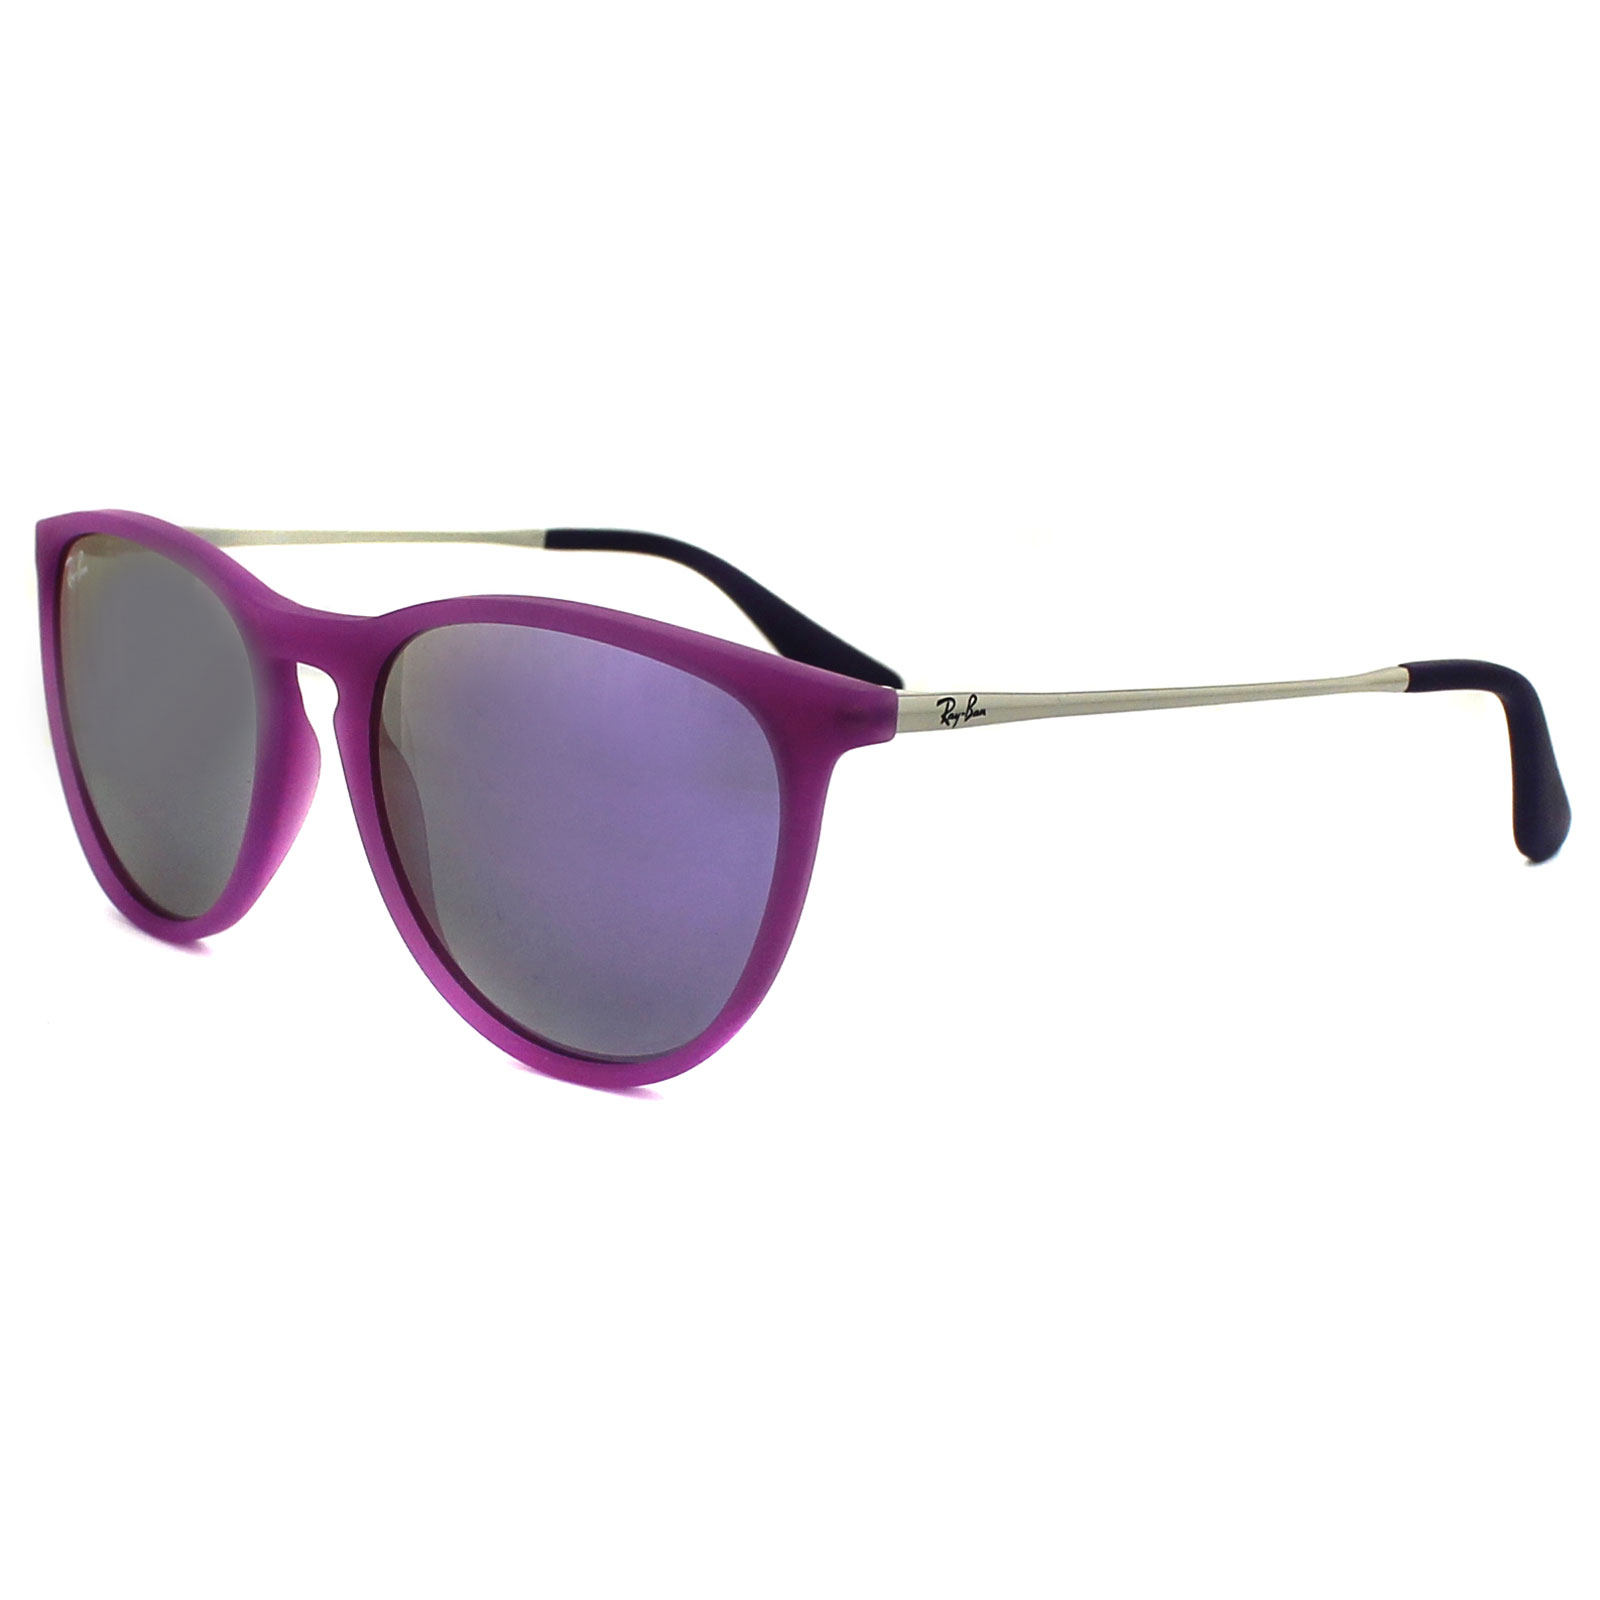 b926c4498c Sentinel Ray-Ban Junior Sunglasses Izzy 9060 70084V Rubber Violet Violet  Mirror